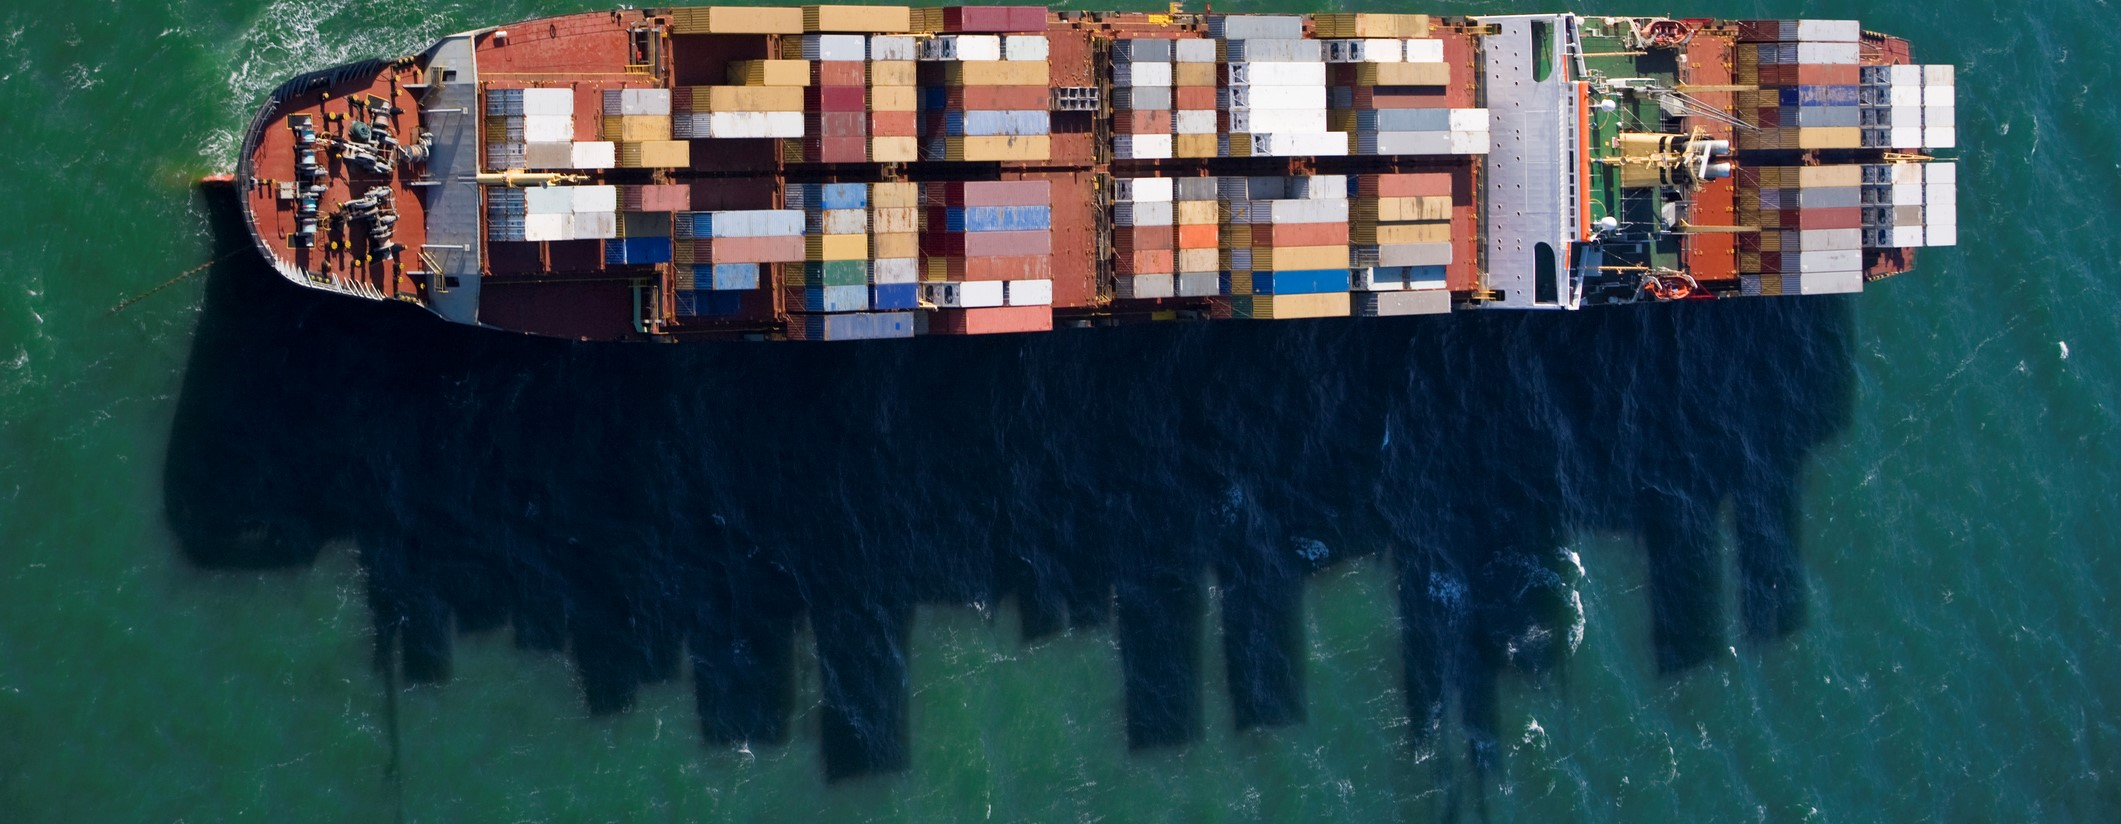 A container ship near Melbourne (Photo: James Lauritz/Getty Images)